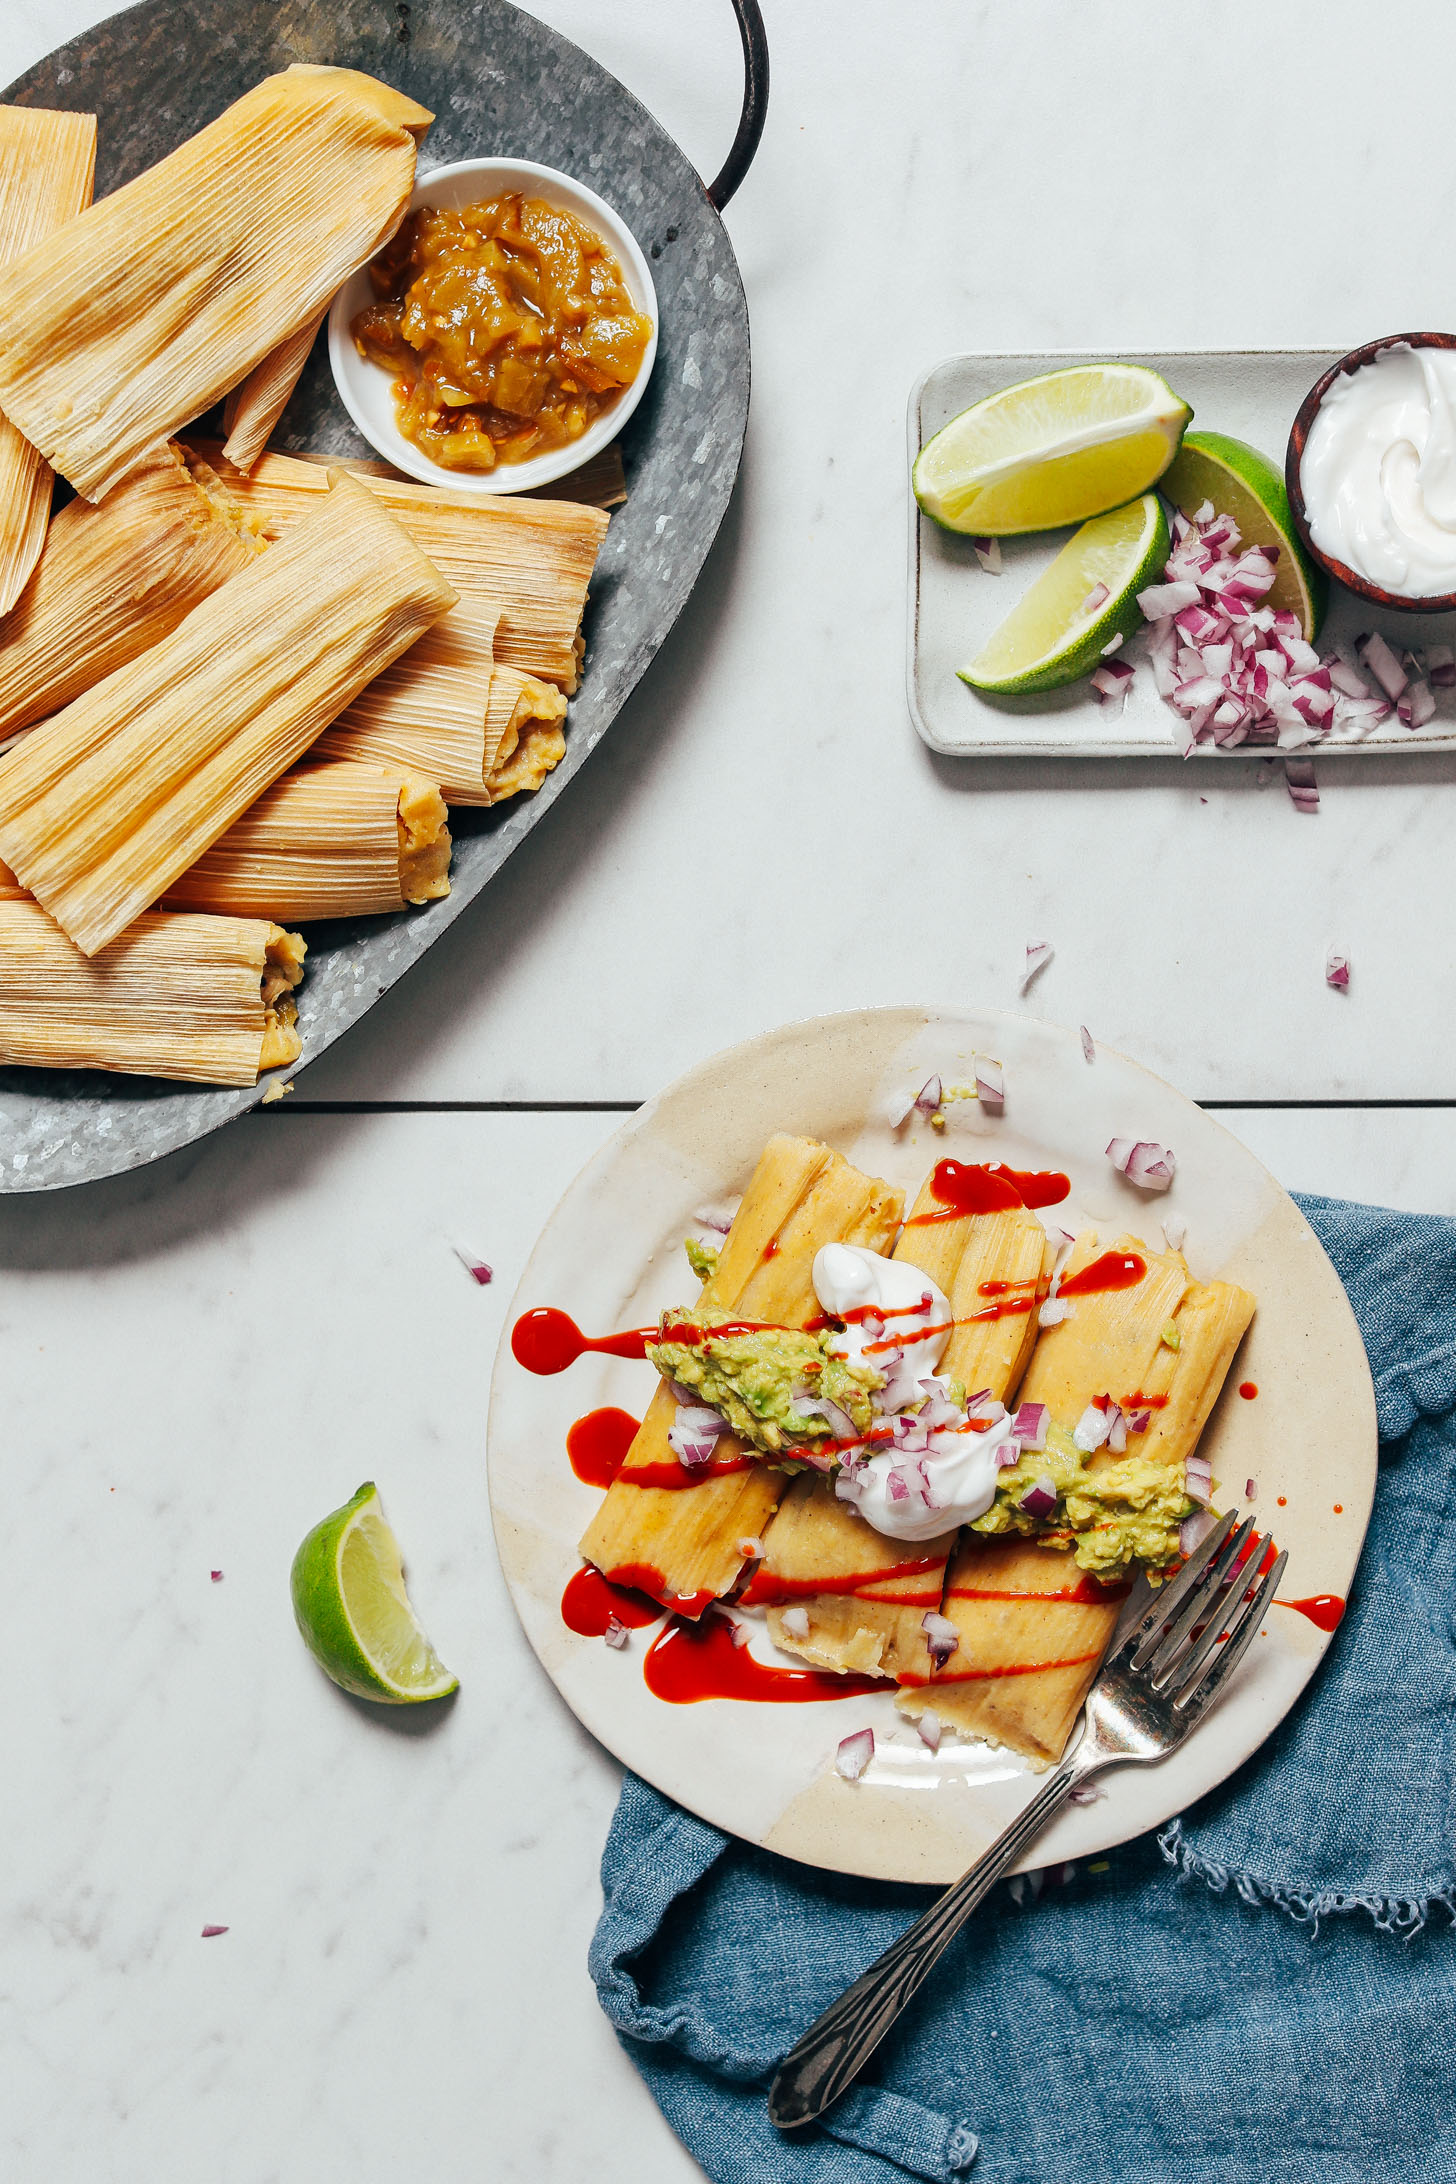 Plate and platter of our delicious Green Chile Chicken Tamales recipe